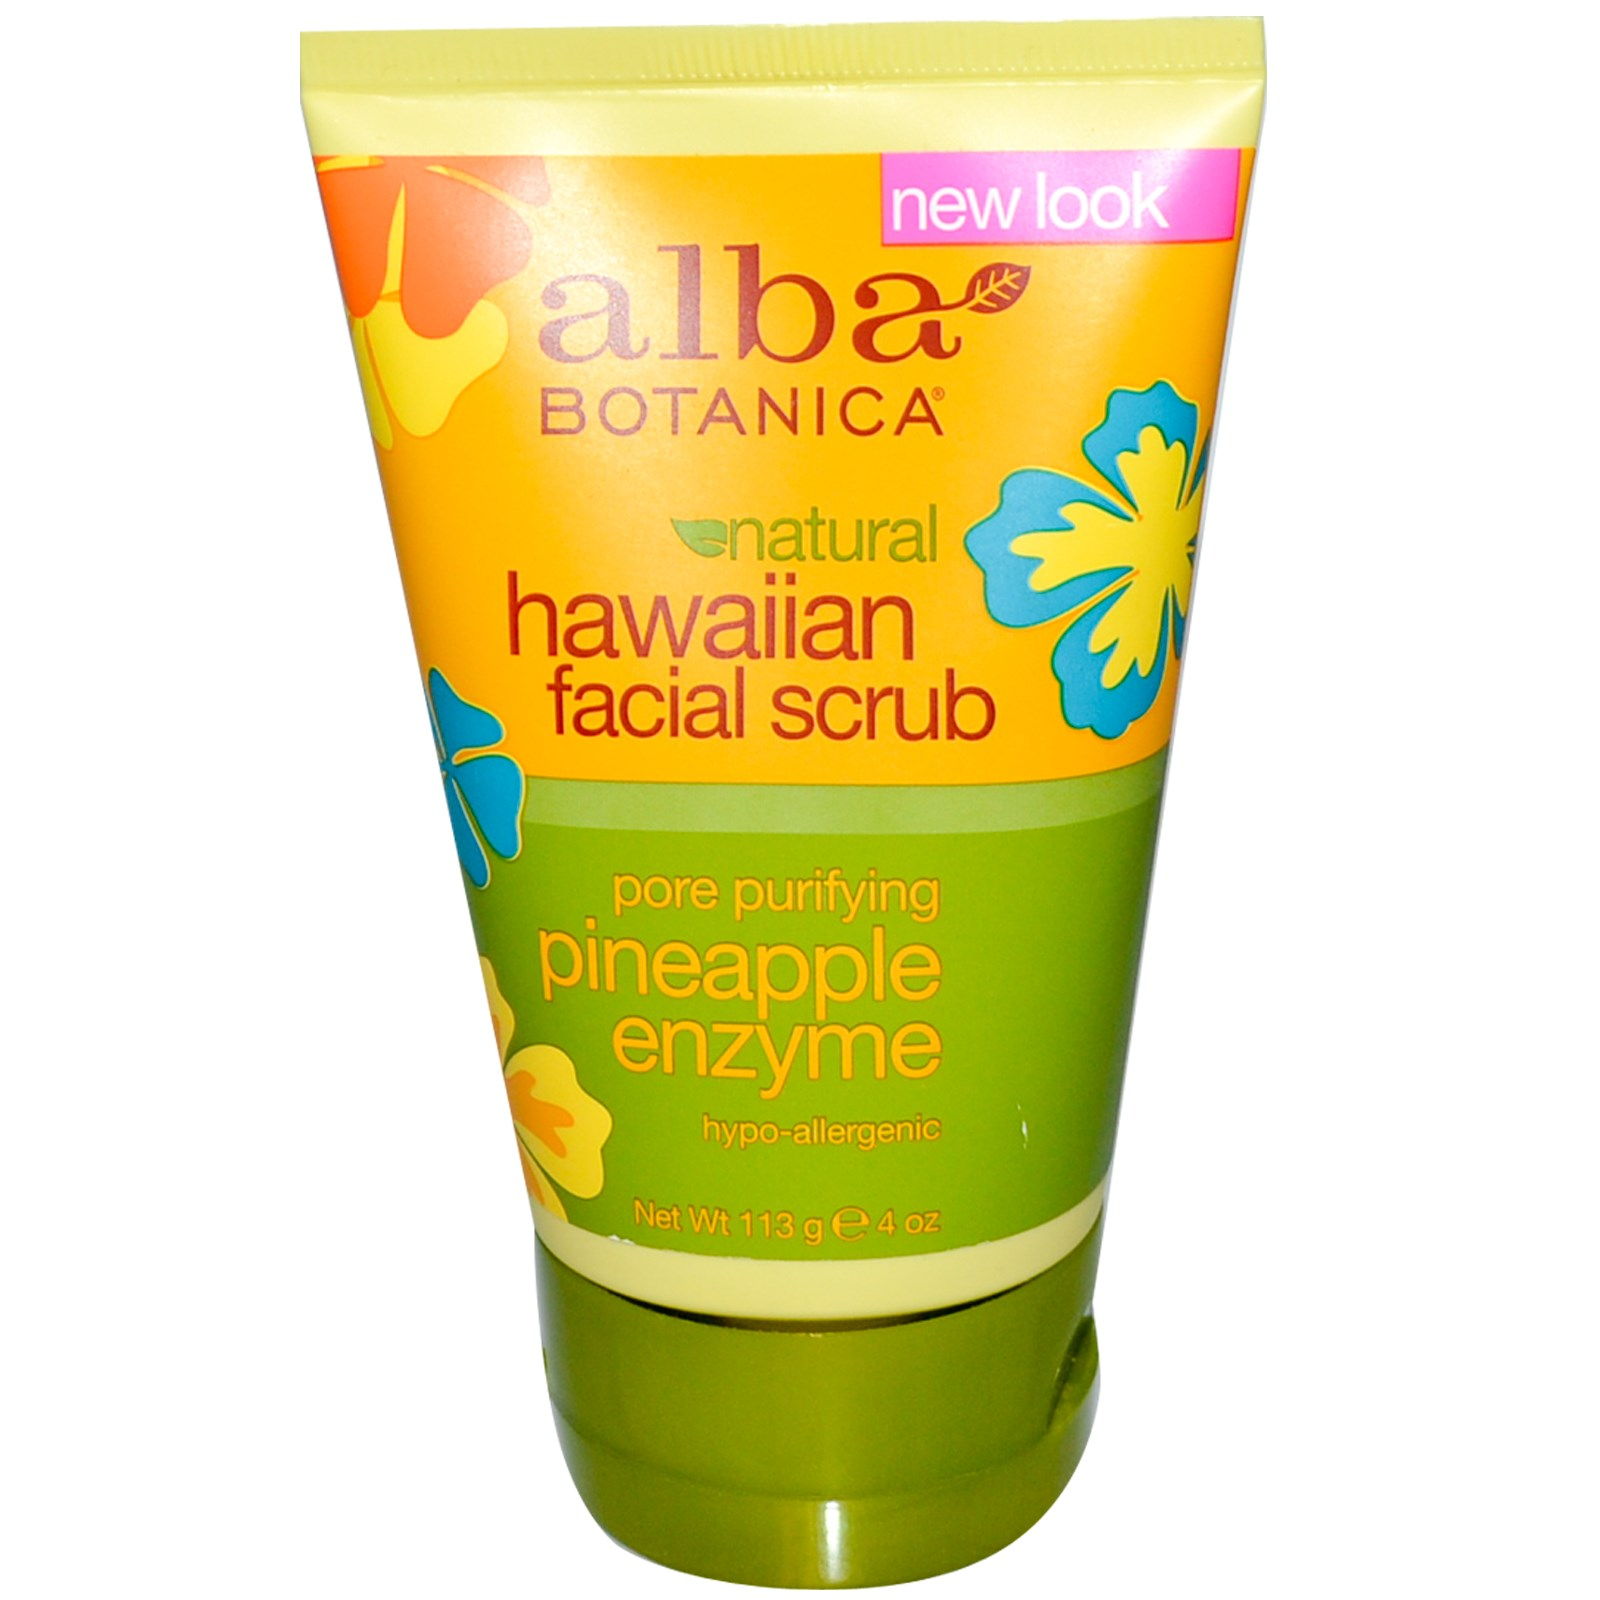 Alba Botanica Hawaiian Pineapple Enzyme Facial Scrub Гавайский скраб для лица (113 g) AL00808